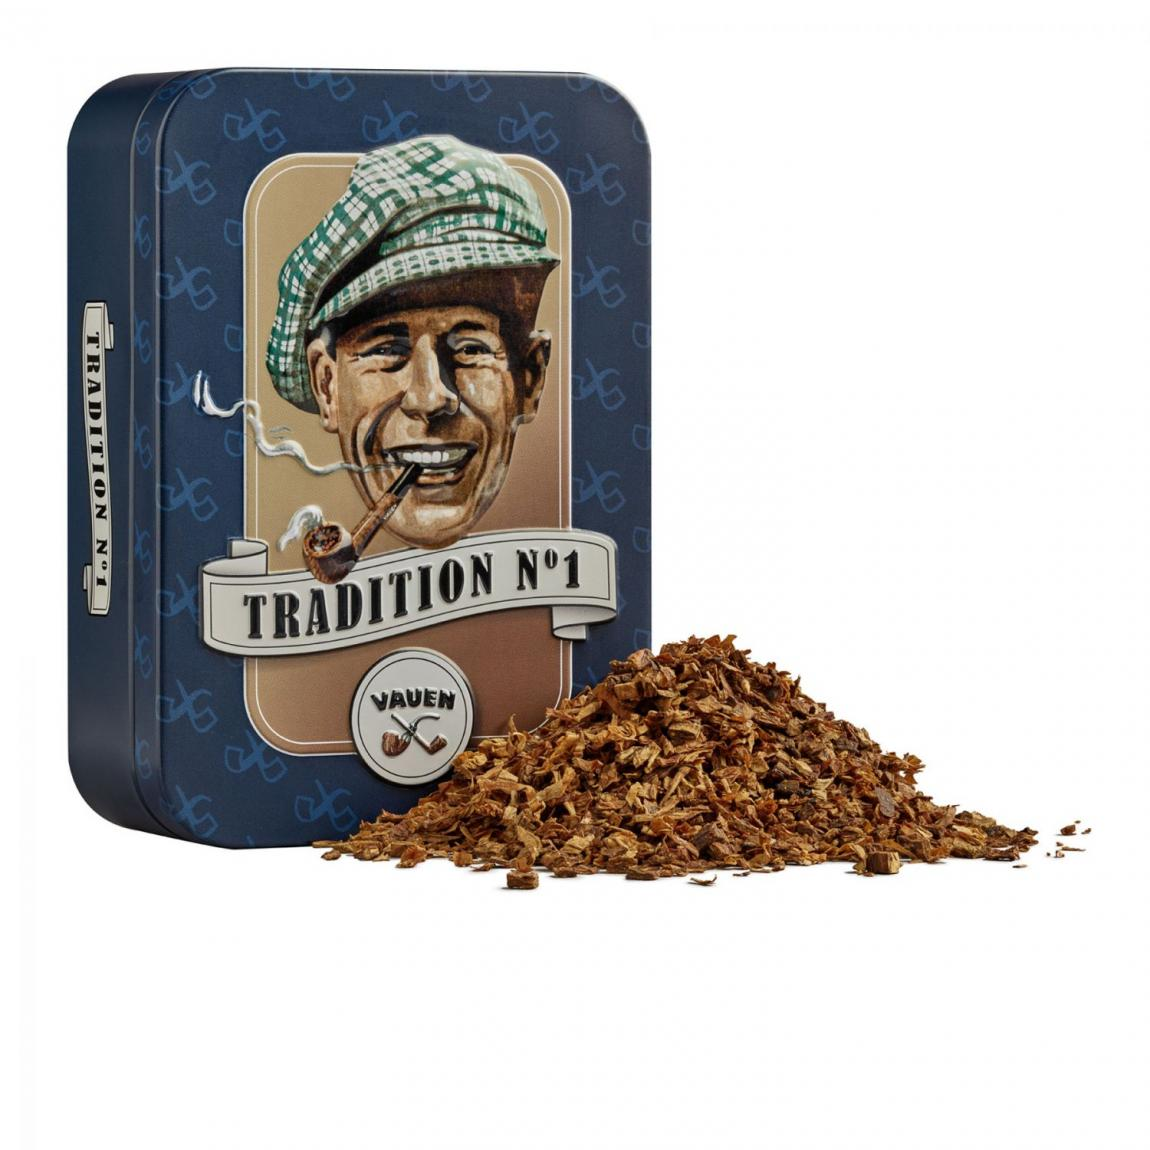 Vauen Tradition No 1, 100g Schmuckdose